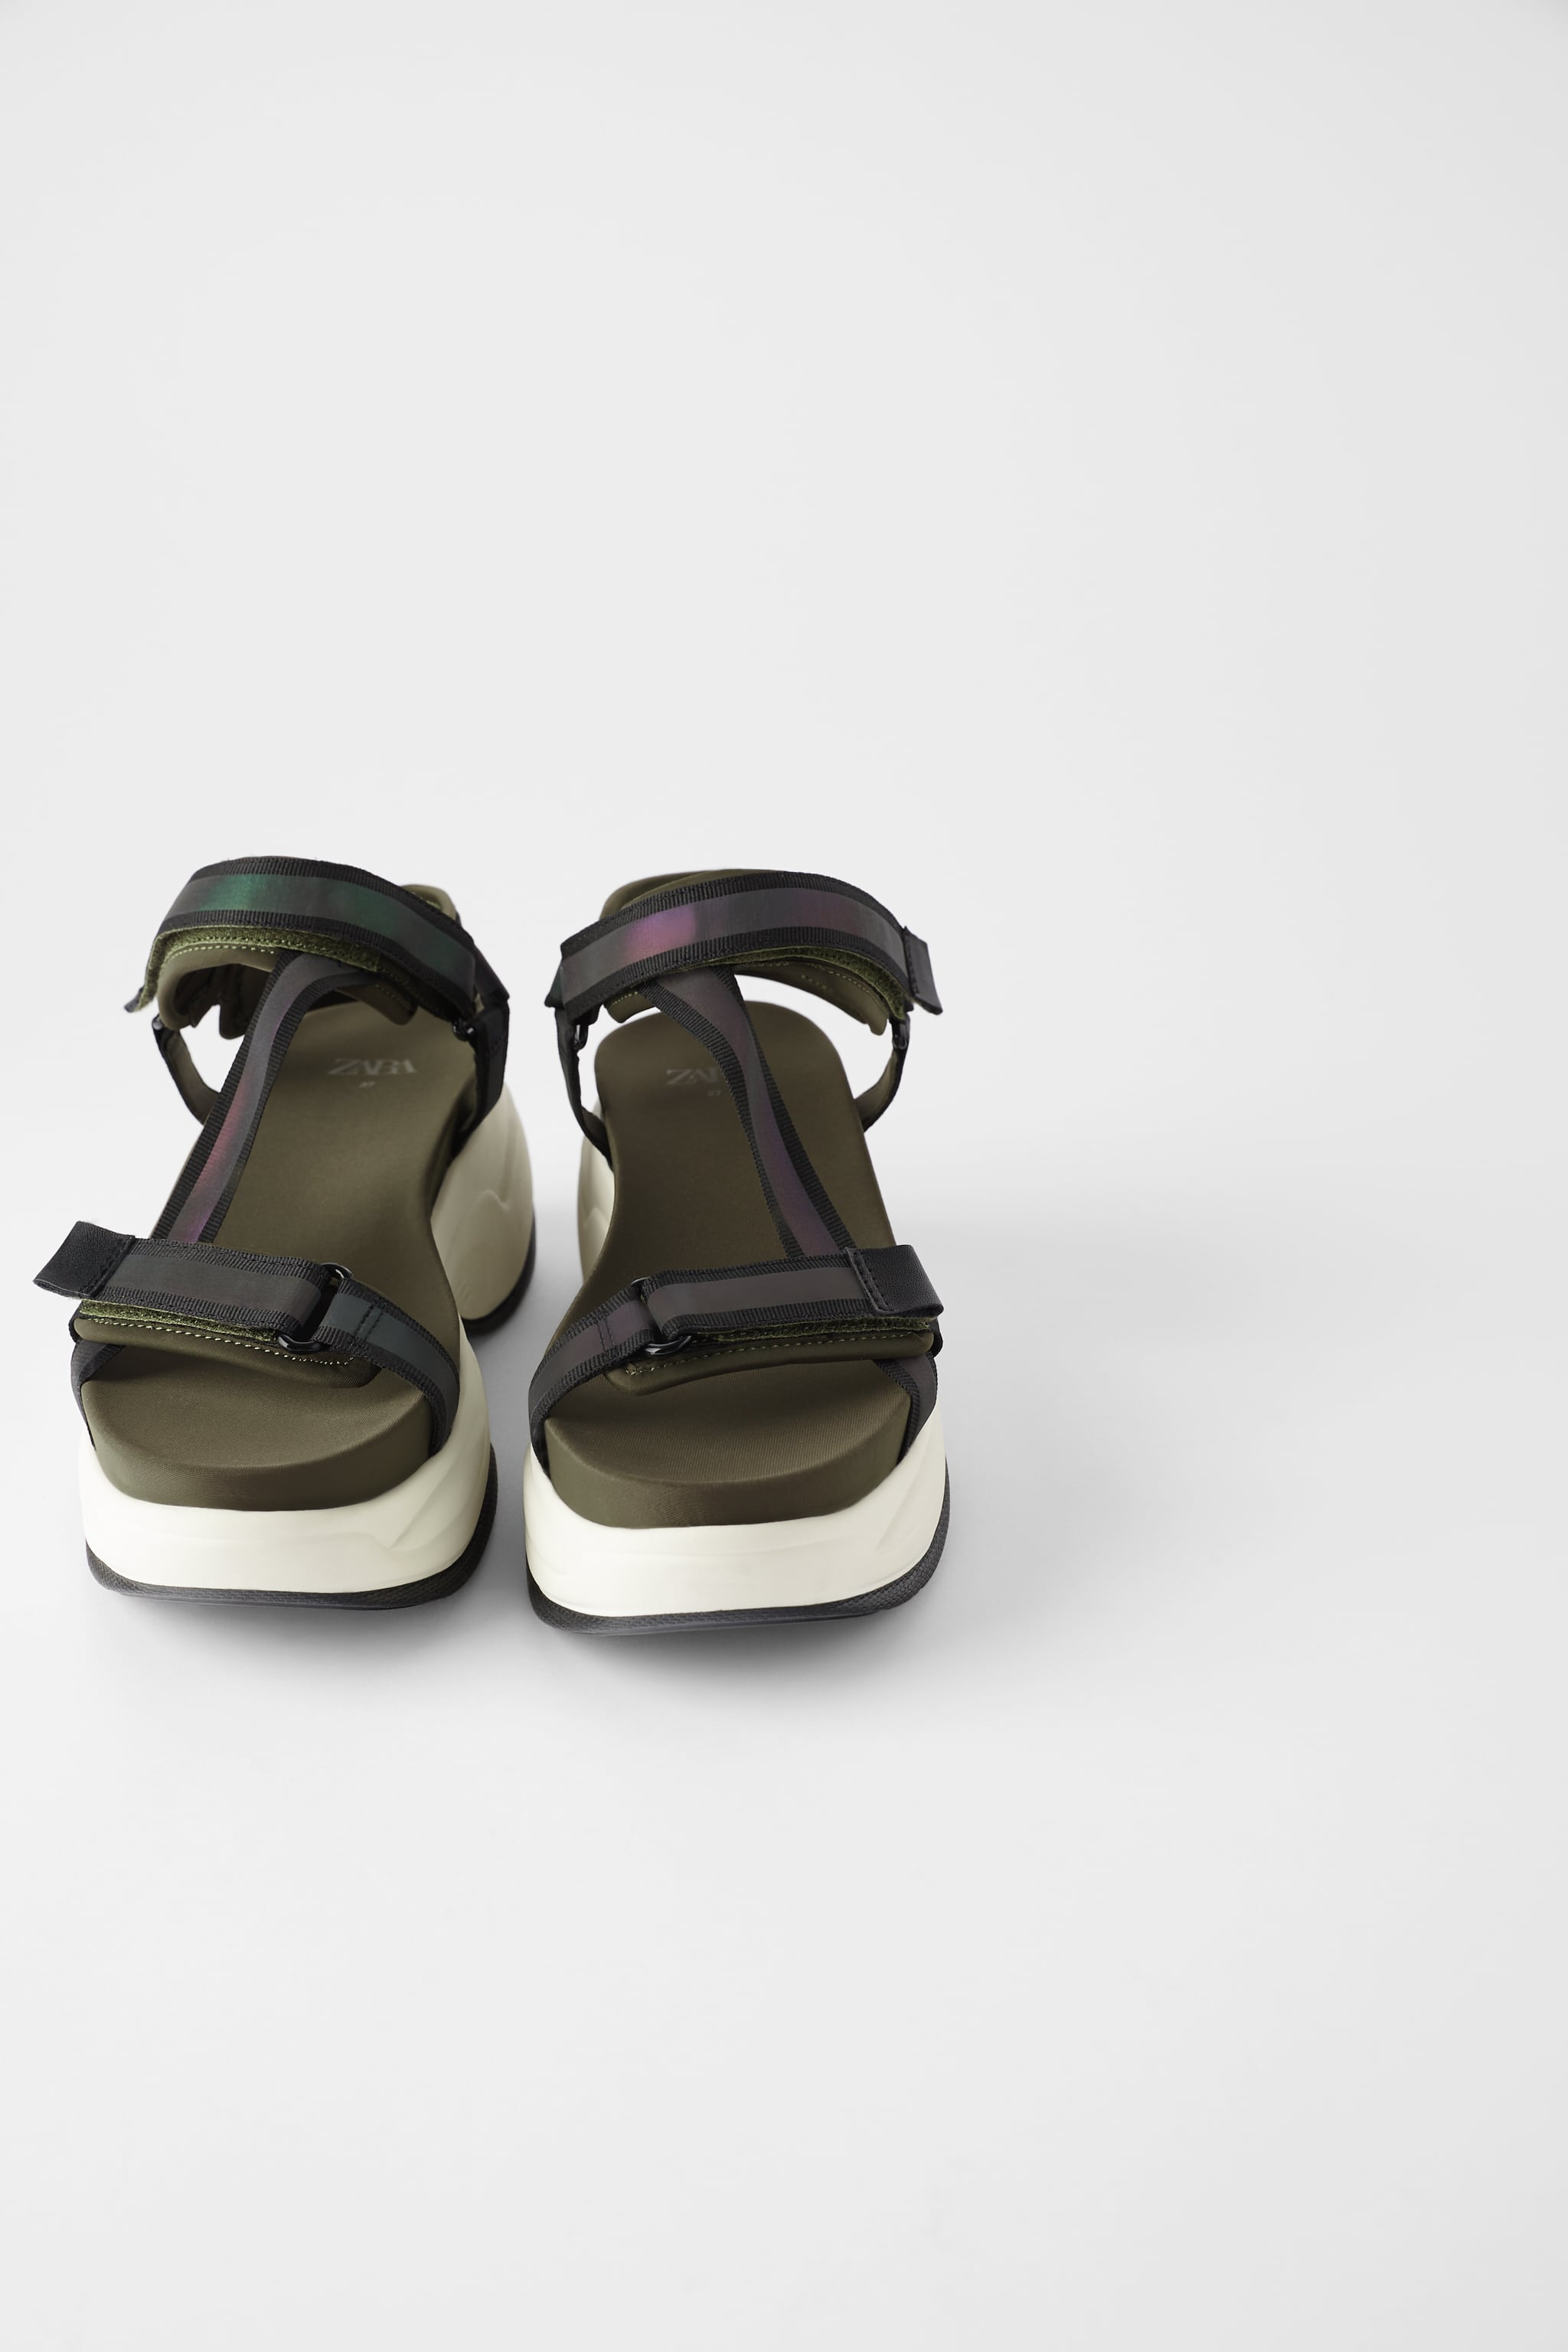 Zara THICK-SOLED ATHLETIC SANDALS